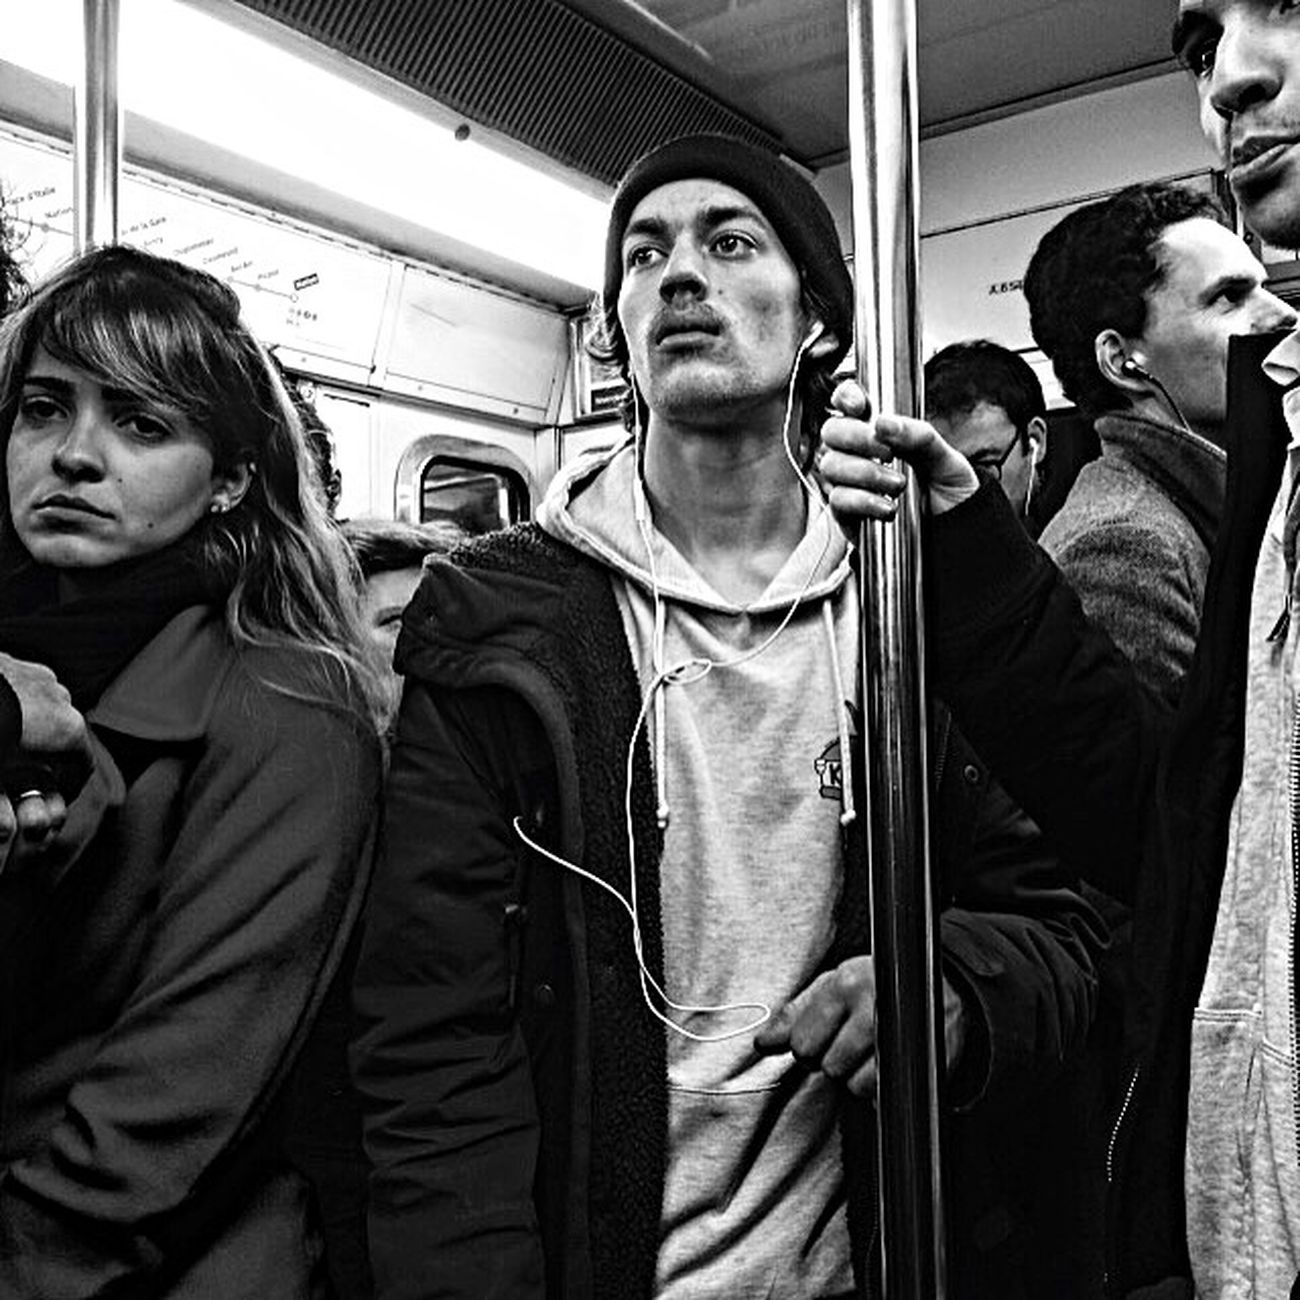 """You, Lost and lonely, You, Just like heaven"" 🎶🎼🎶 Passenger Subway Train City Life Embrace Urban Life Capture The Moment Urbanphotography EyeEm Black&white! Bnw_collection Black And White Collection  Monochrome Personal Project EyeEm Bnw Poetry In Pictures Urban Exploration Real People Subway Life Subway People Bnwportrait Exploring The Unknown"